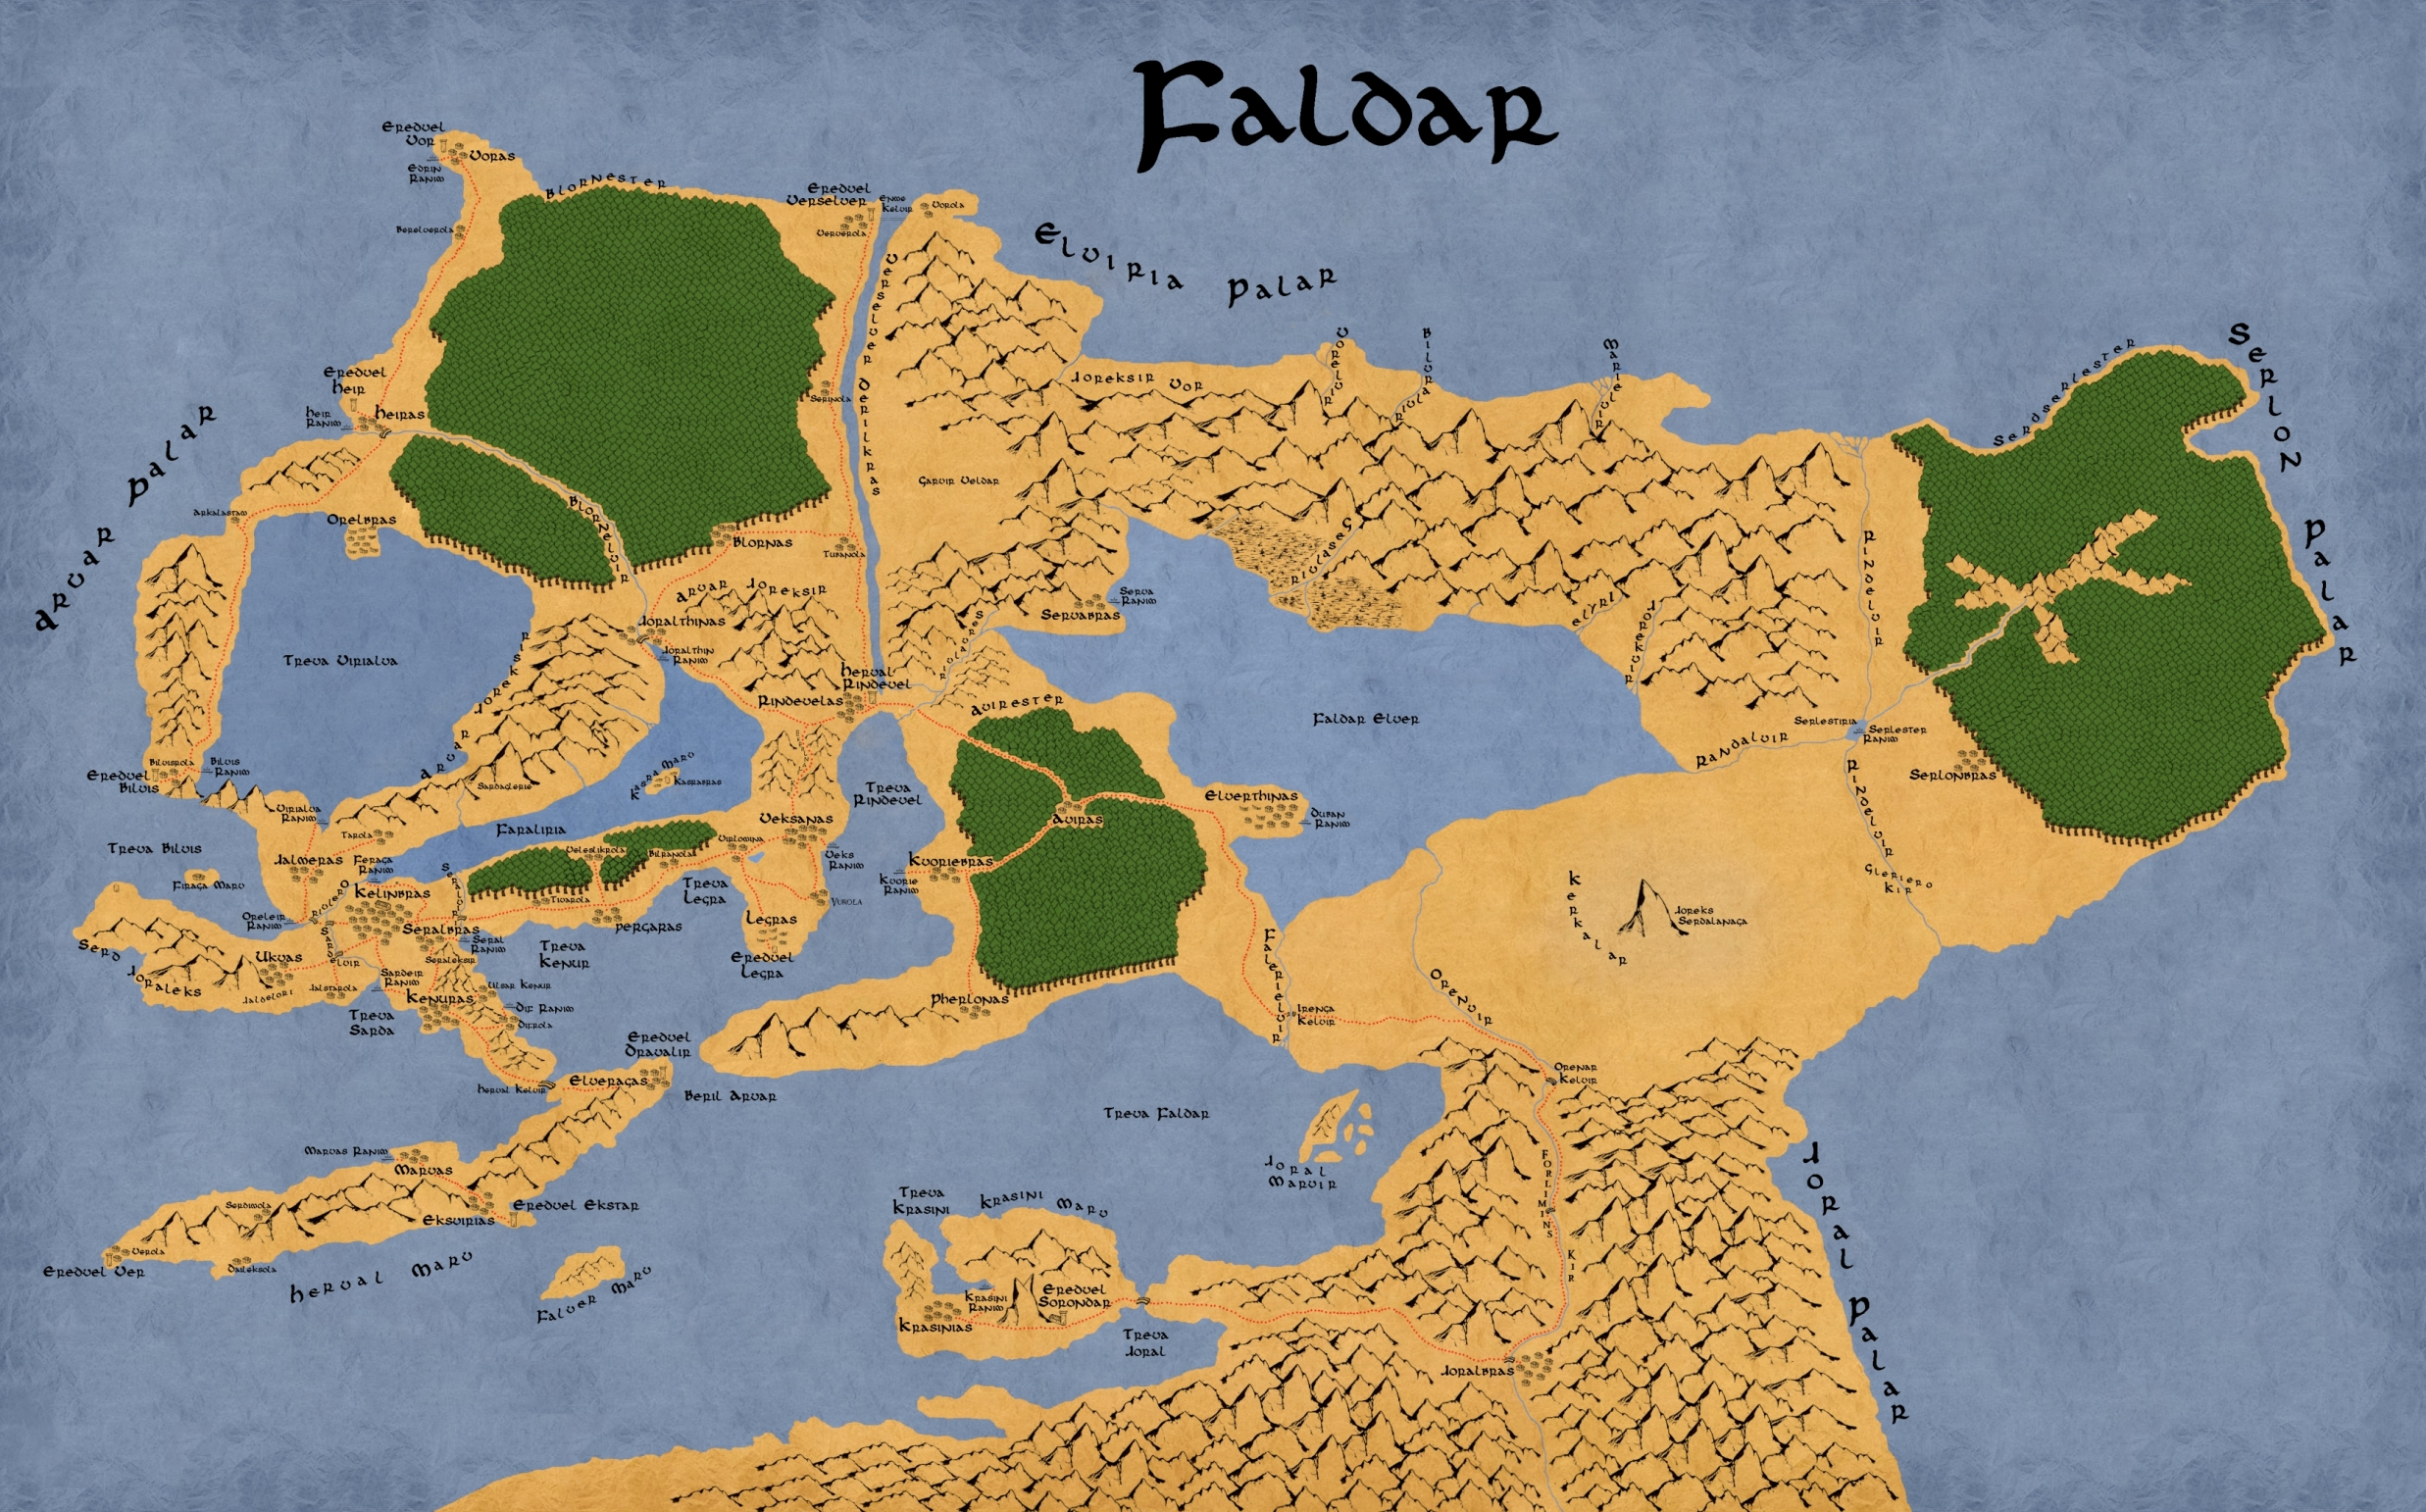 Faldar